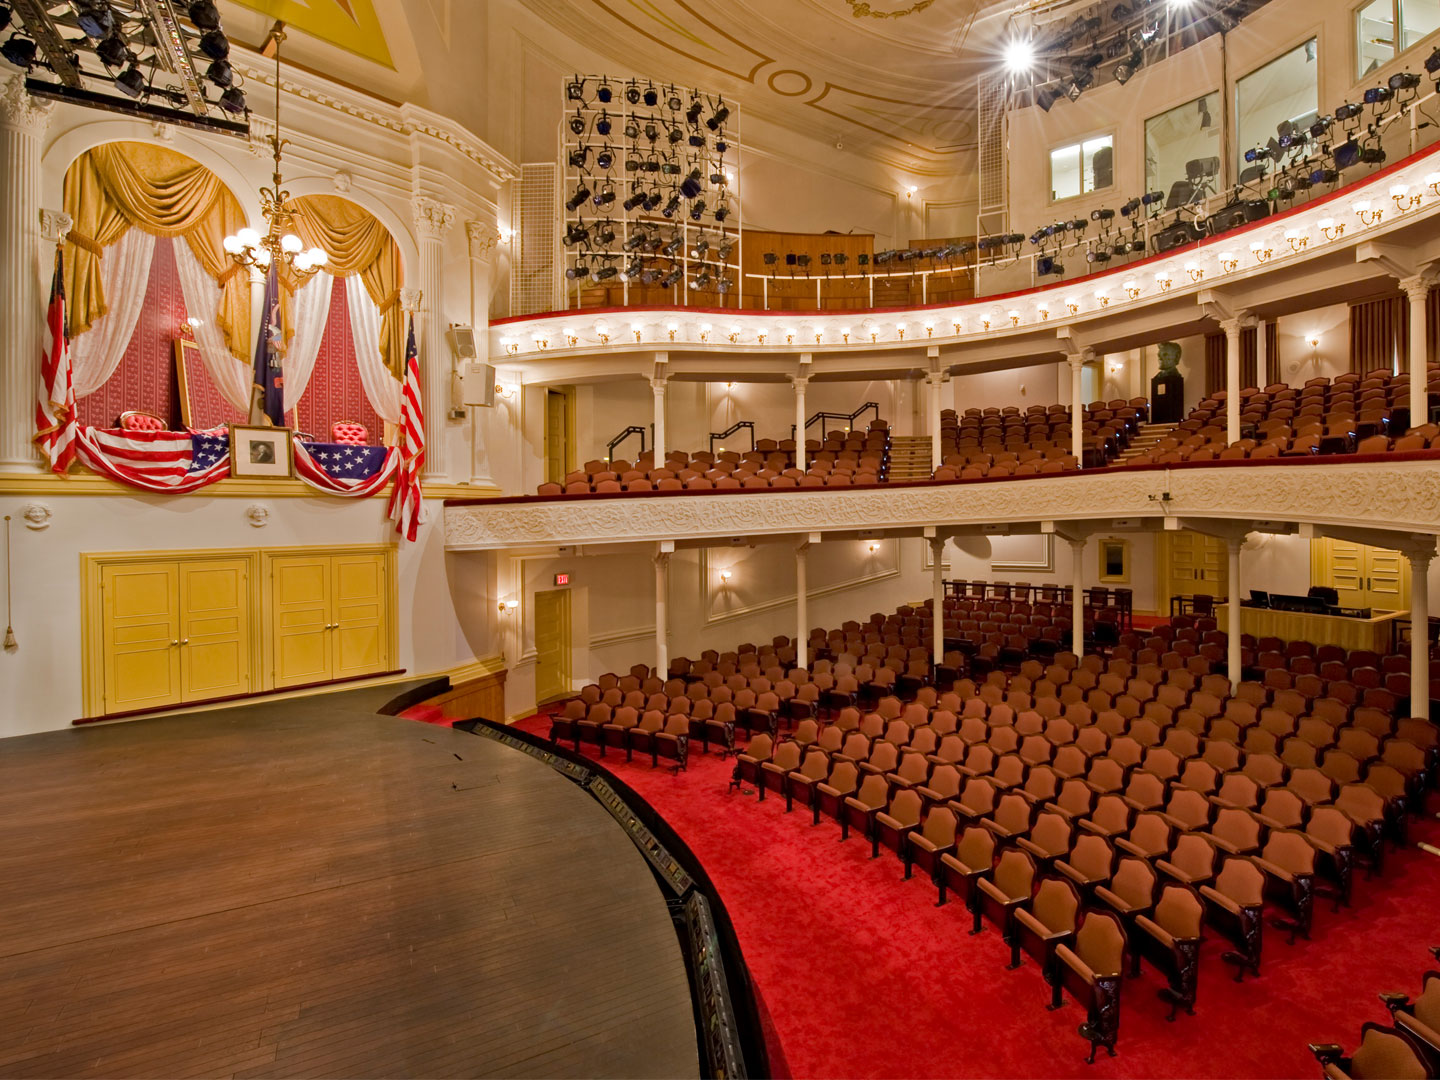 A side view of the stage and seating at Ford's Theatre. On the left is the President Box with an American flag, a framed picture of George Washington and American flag bunting draped over the box.